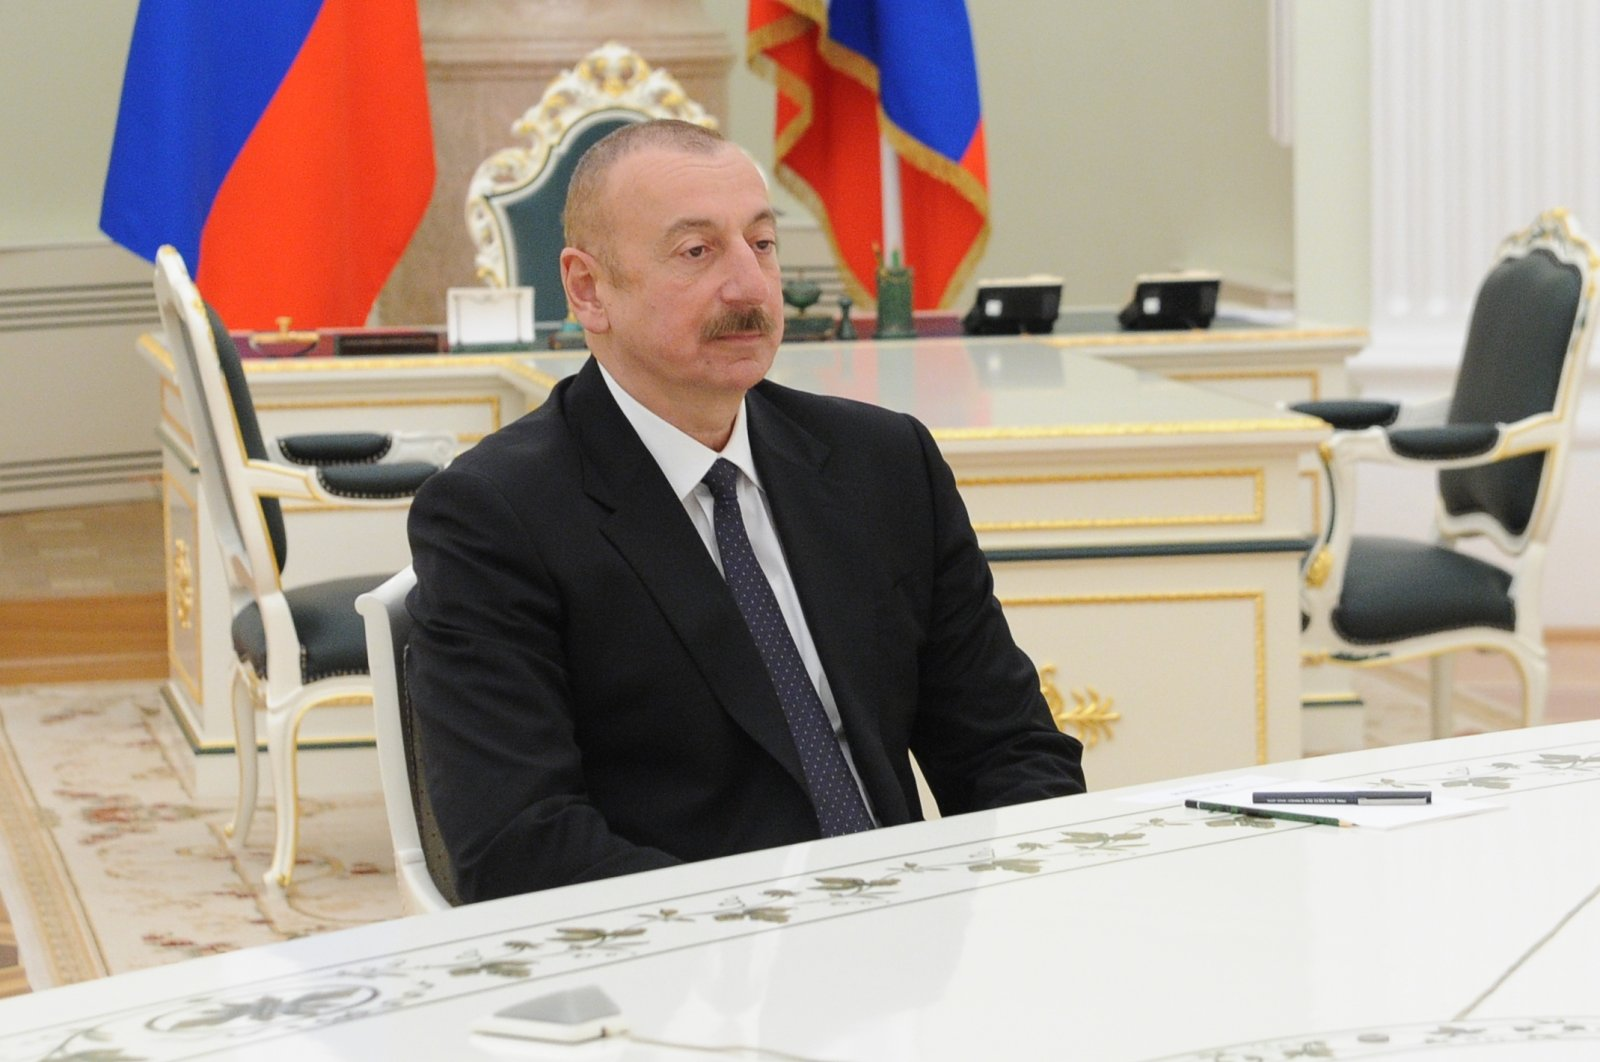 Azerbaijan's President Ilham Aliyev is seen during a trilateral meeting with the president of Russia and the prime minister of Armenia to discuss the implementation of the tripartite statement on Nagorno-Karabakh, Moscow, Russia, January 11, 2021. (Reuters Photo)